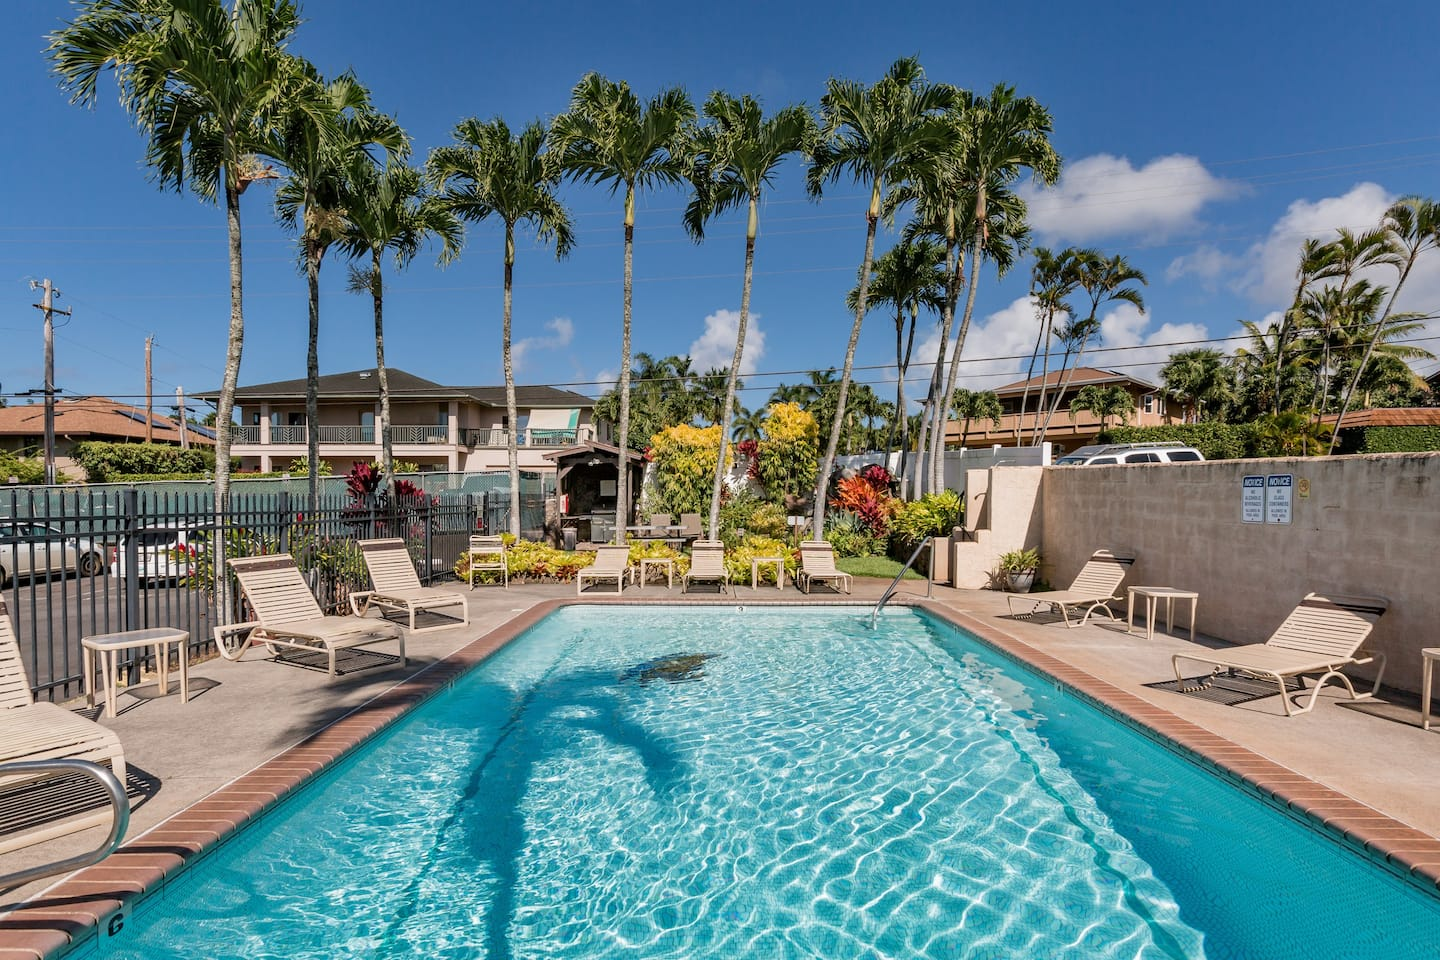 Best Airbnb in Hawaii With Pool